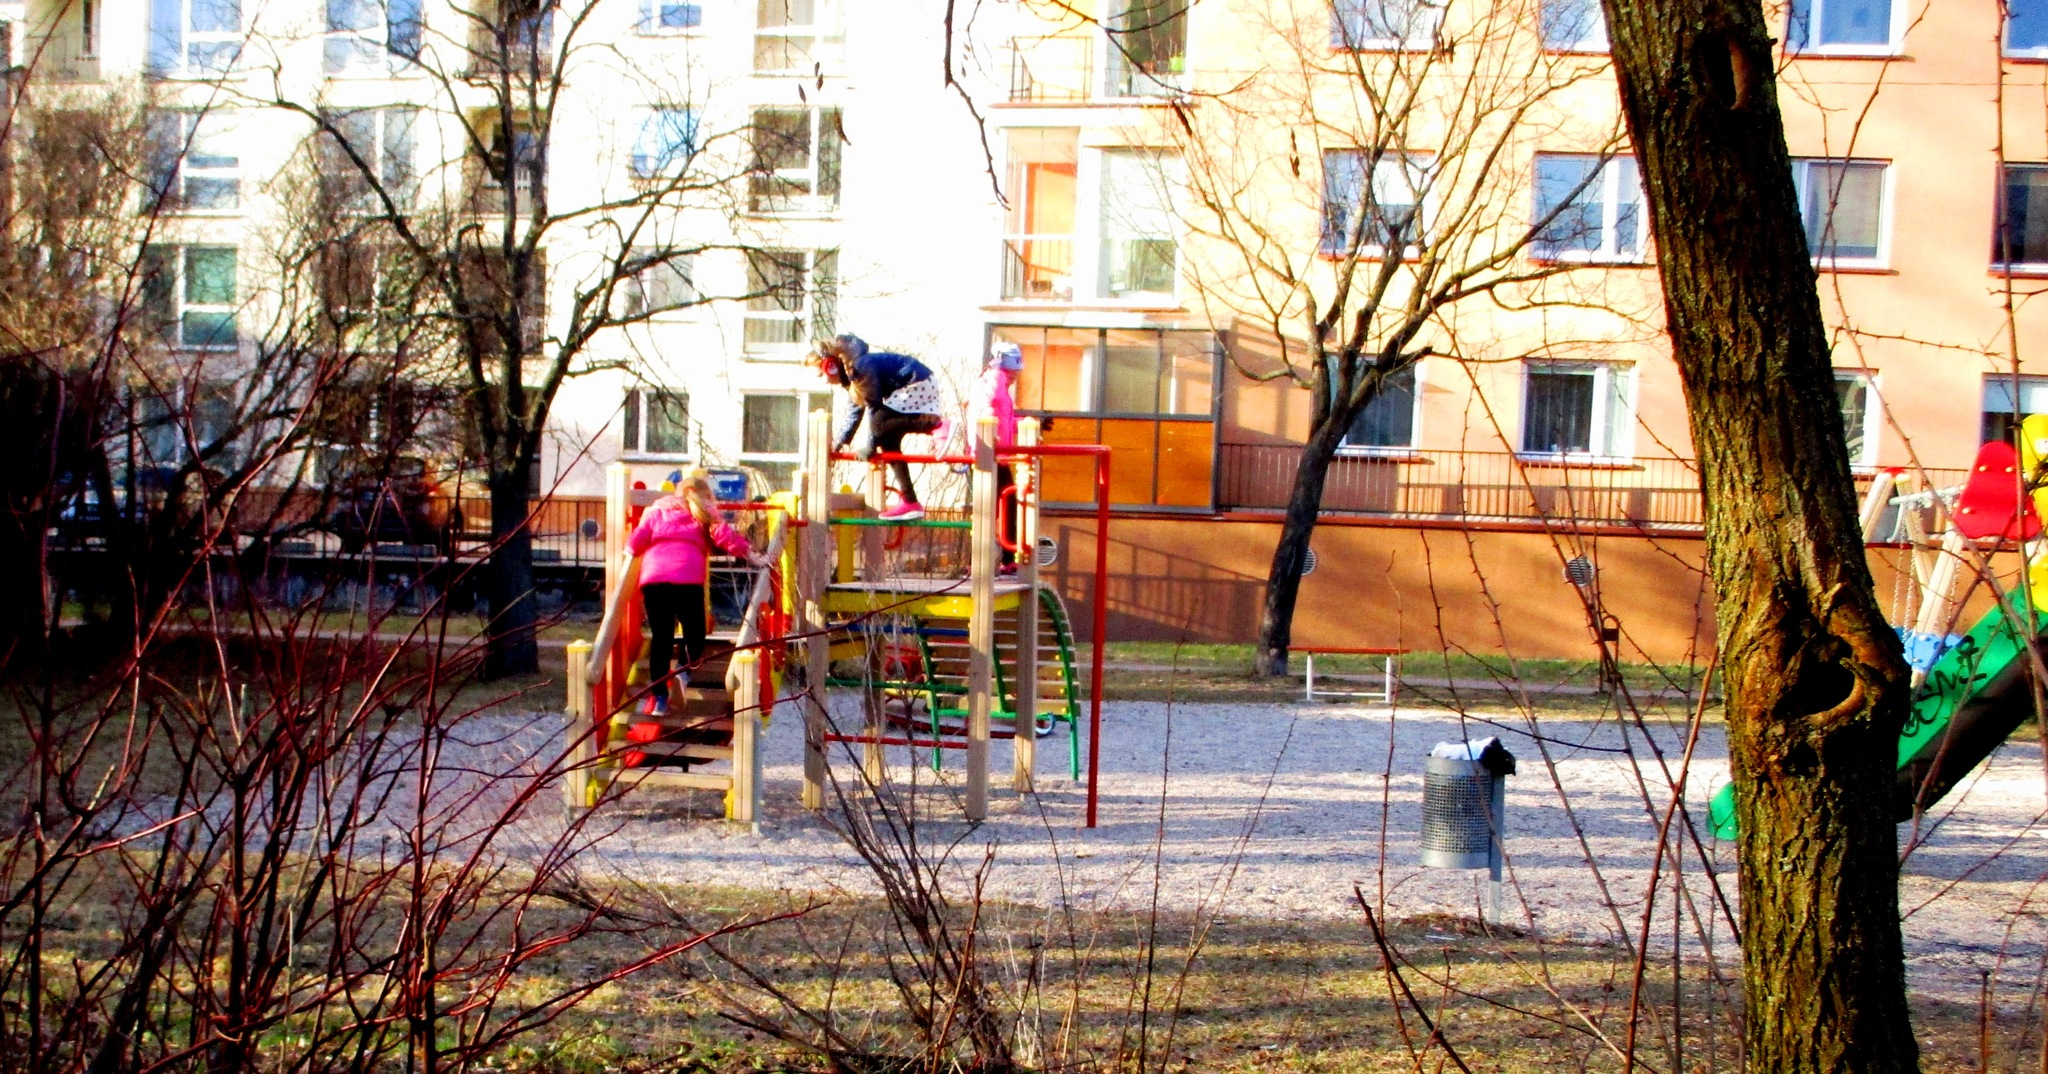 ☺ The Kids Are Playing ☺ by Agnė Bakševičiūtė